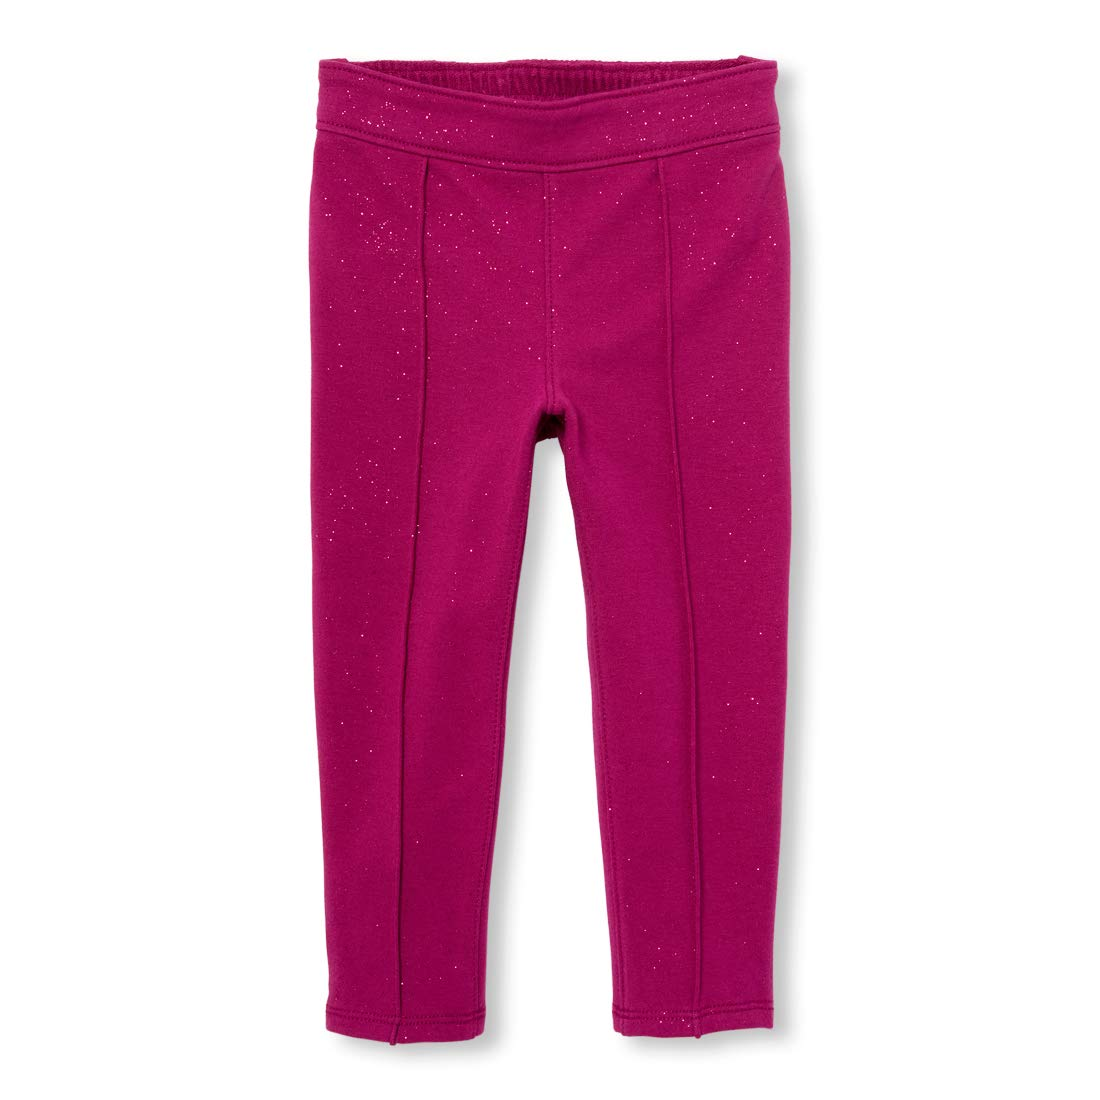 3f6c8f092b63c Amazon.com: The Children's Place Girls' Knit Jeggings: Clothing